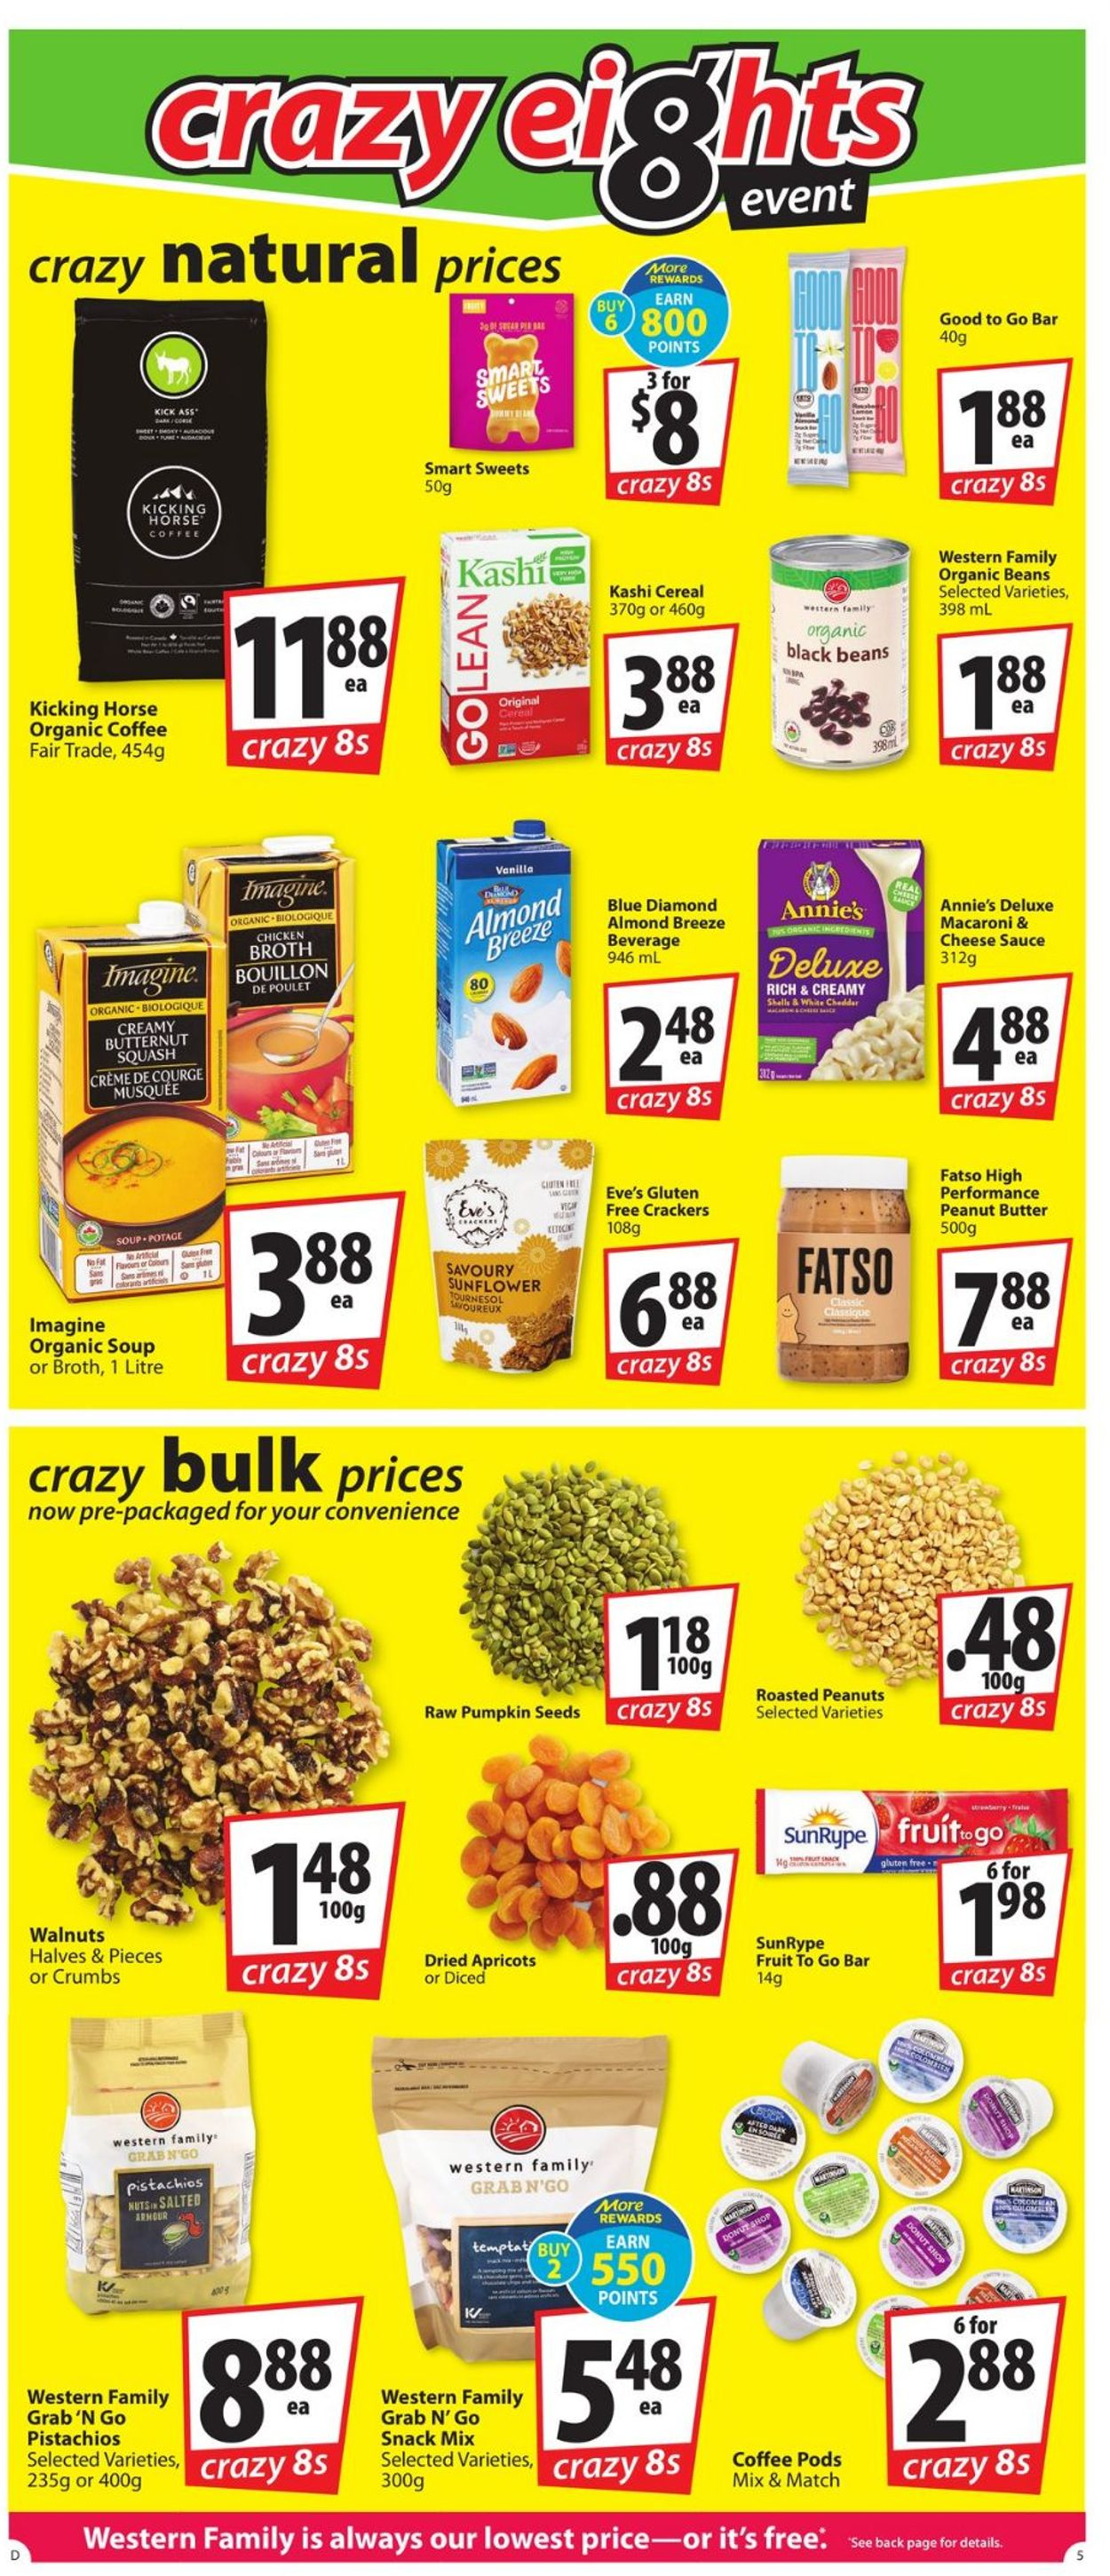 Save-On-Foods - Crazy Eigths 2021 Flyer - 01/02-01/06/2021 (Page 5)